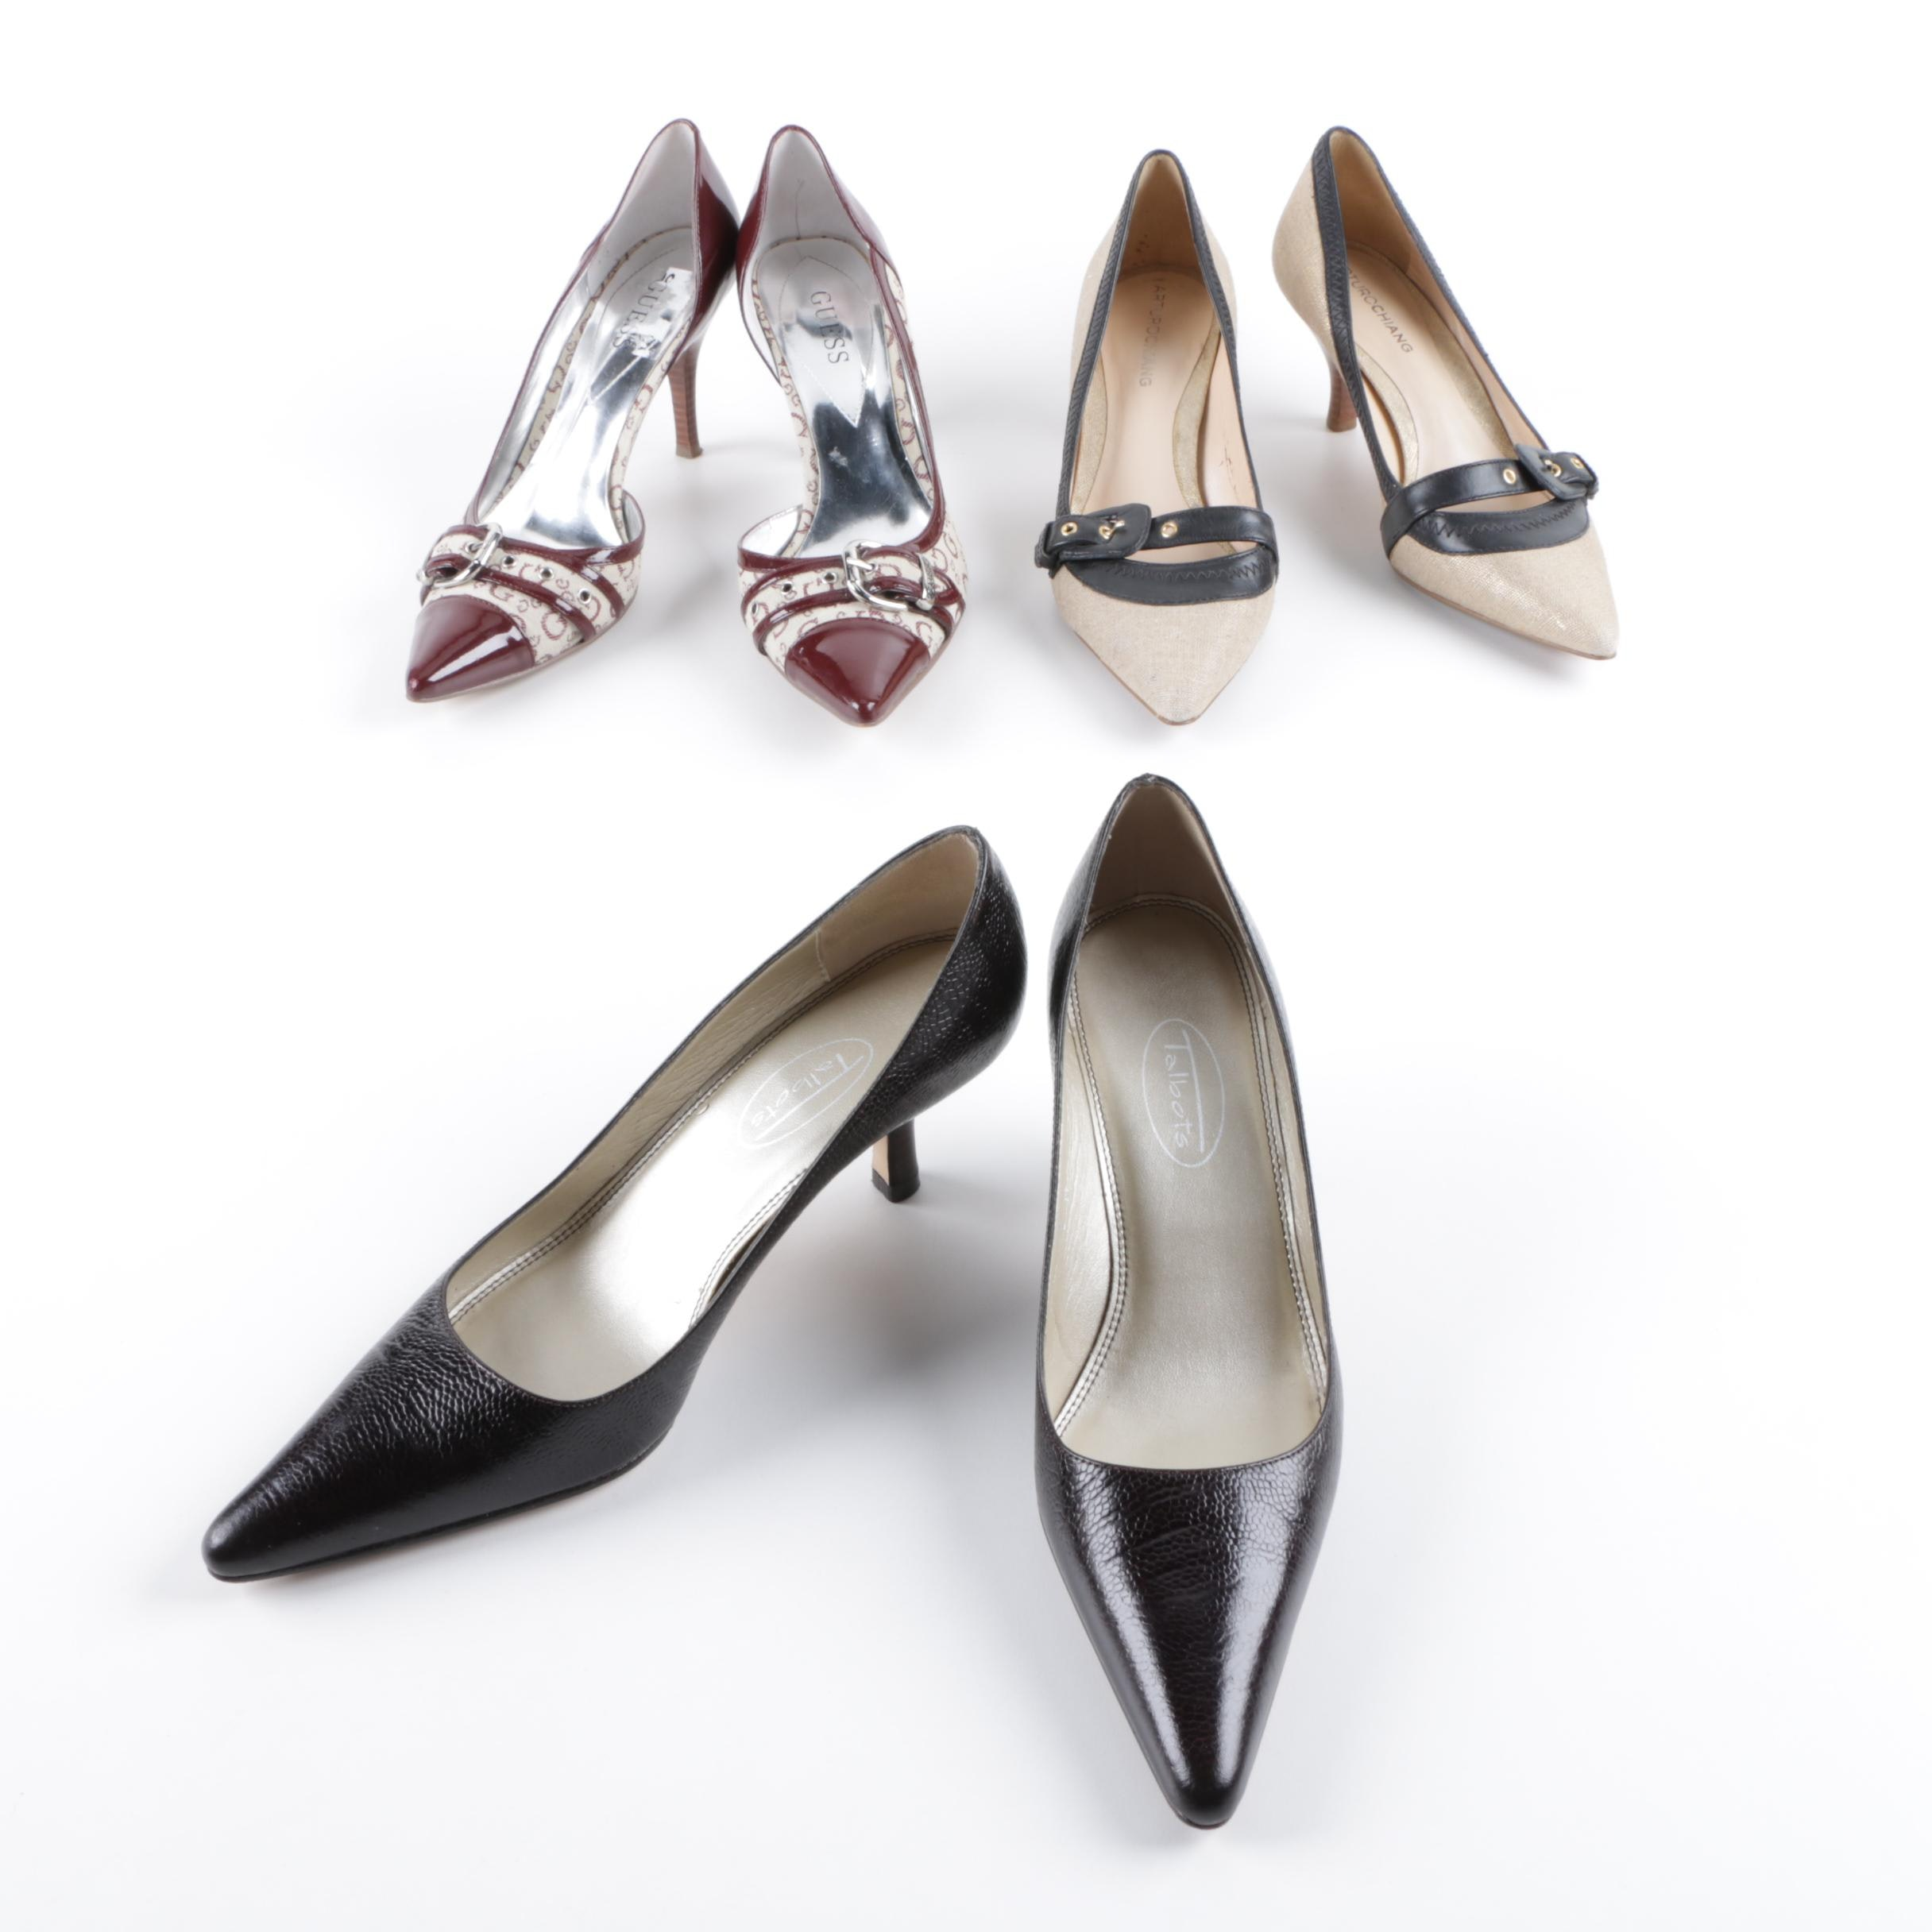 Pointy Toe High Heel Pumps Including Guess